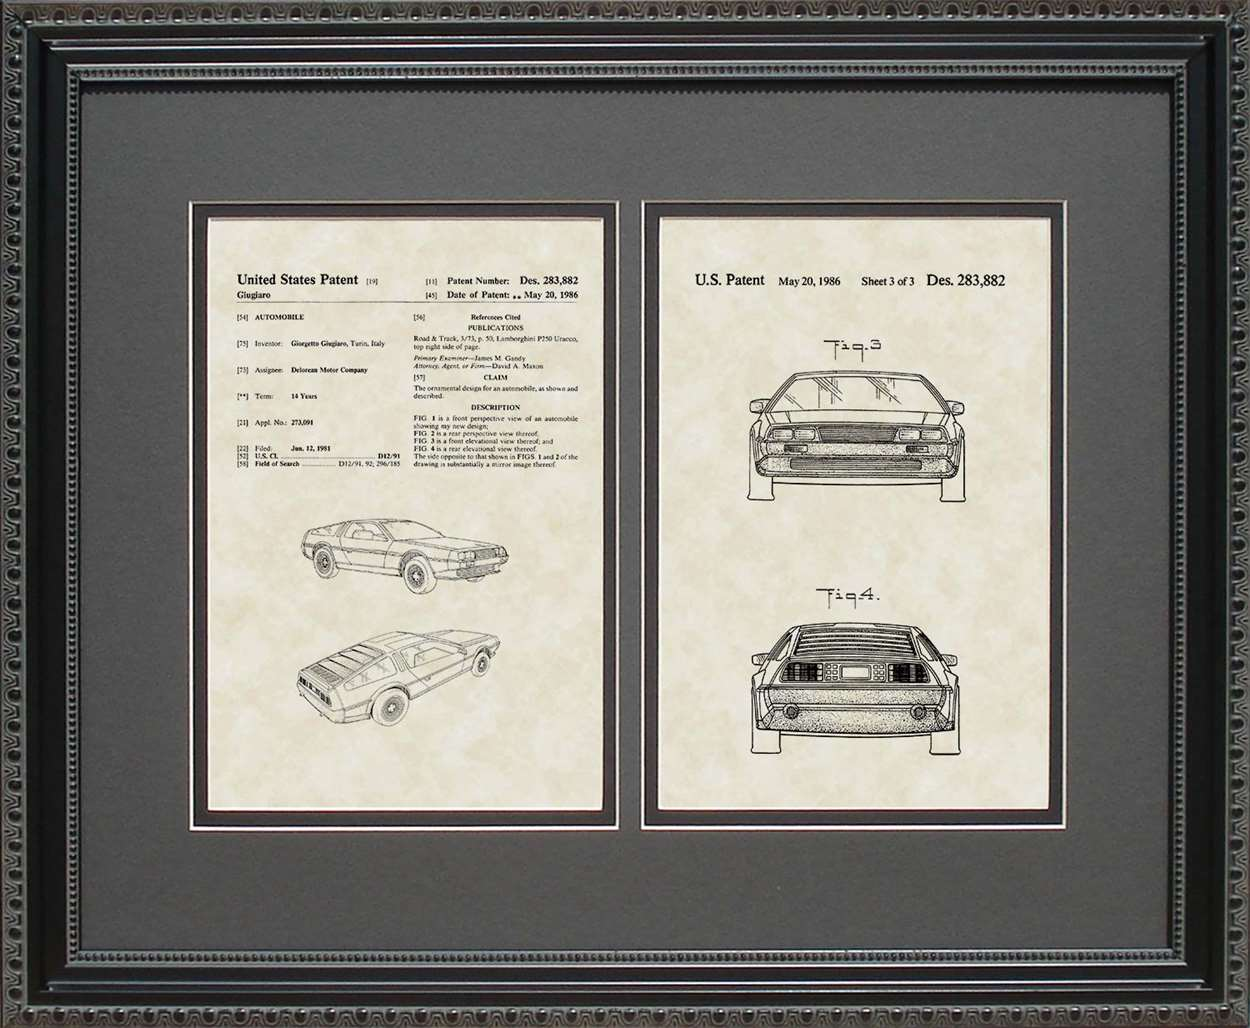 Delorean Auto Patent, Art & Copy, Giugiaro, 1986, 16x20